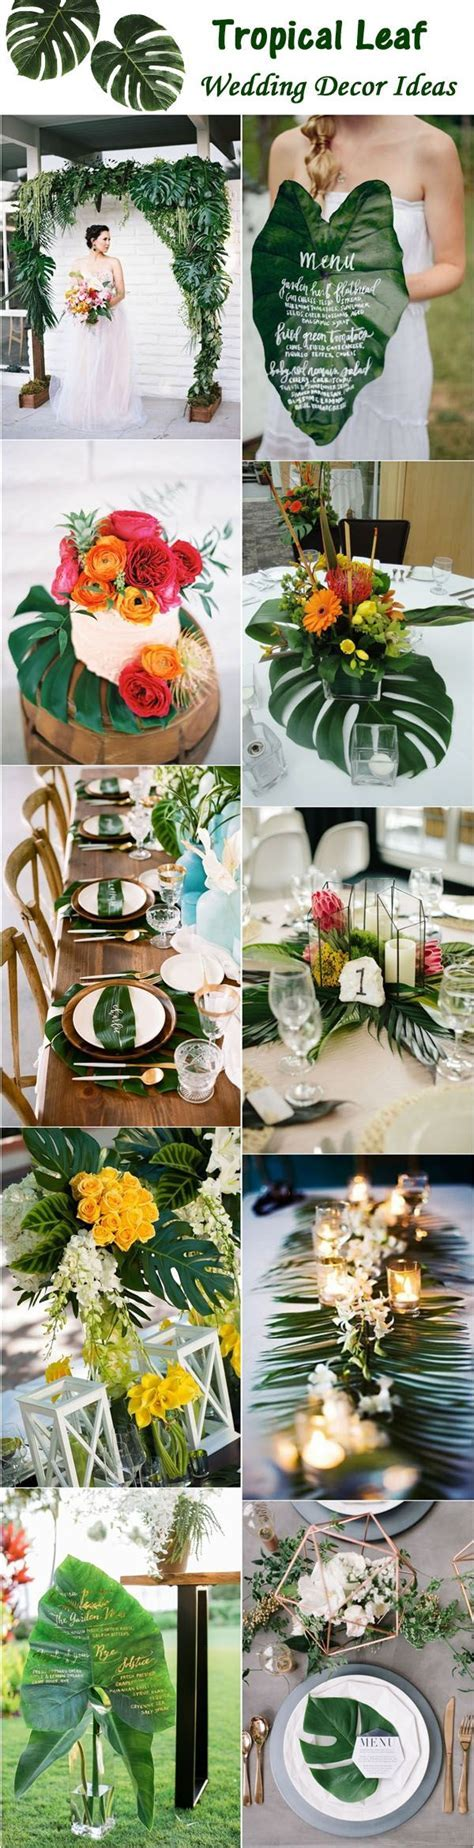 25  best Tropical Weddings ideas on Pinterest   Tropical